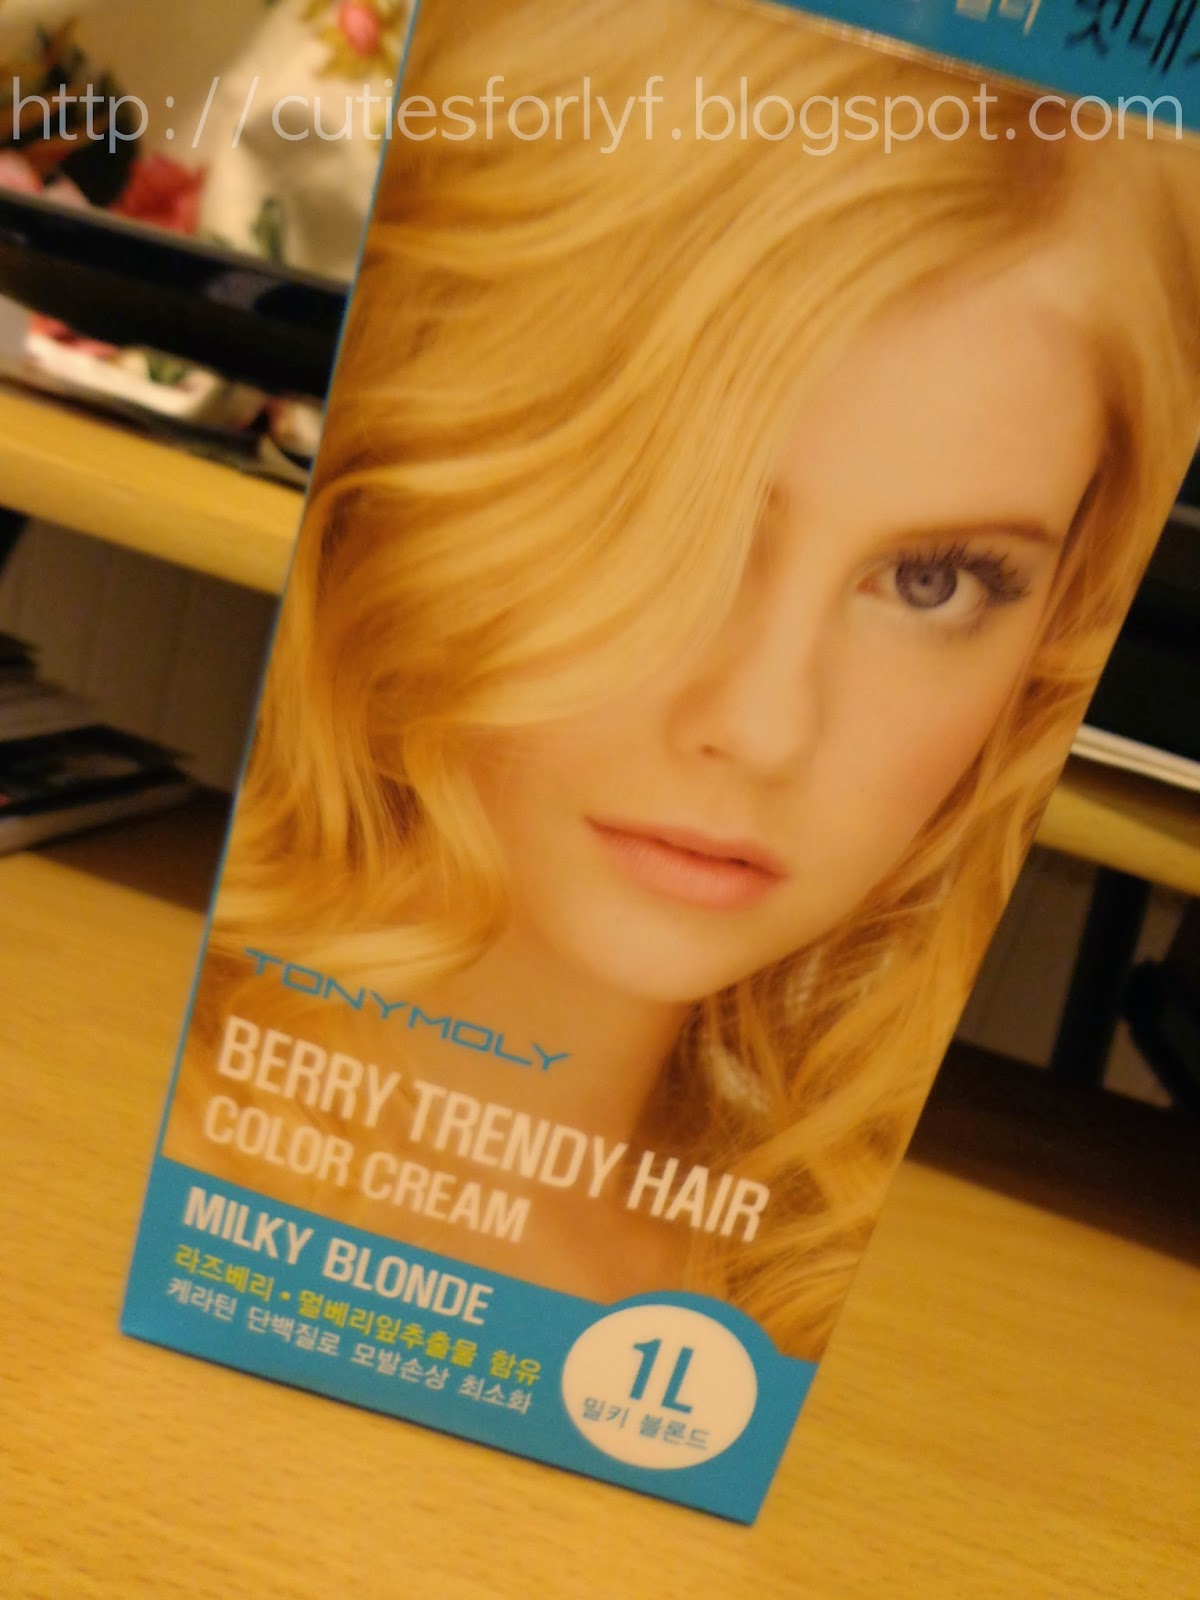 Cutiesforlyf Review Tony Moly Berry Trendy Hair Color Cream Milky